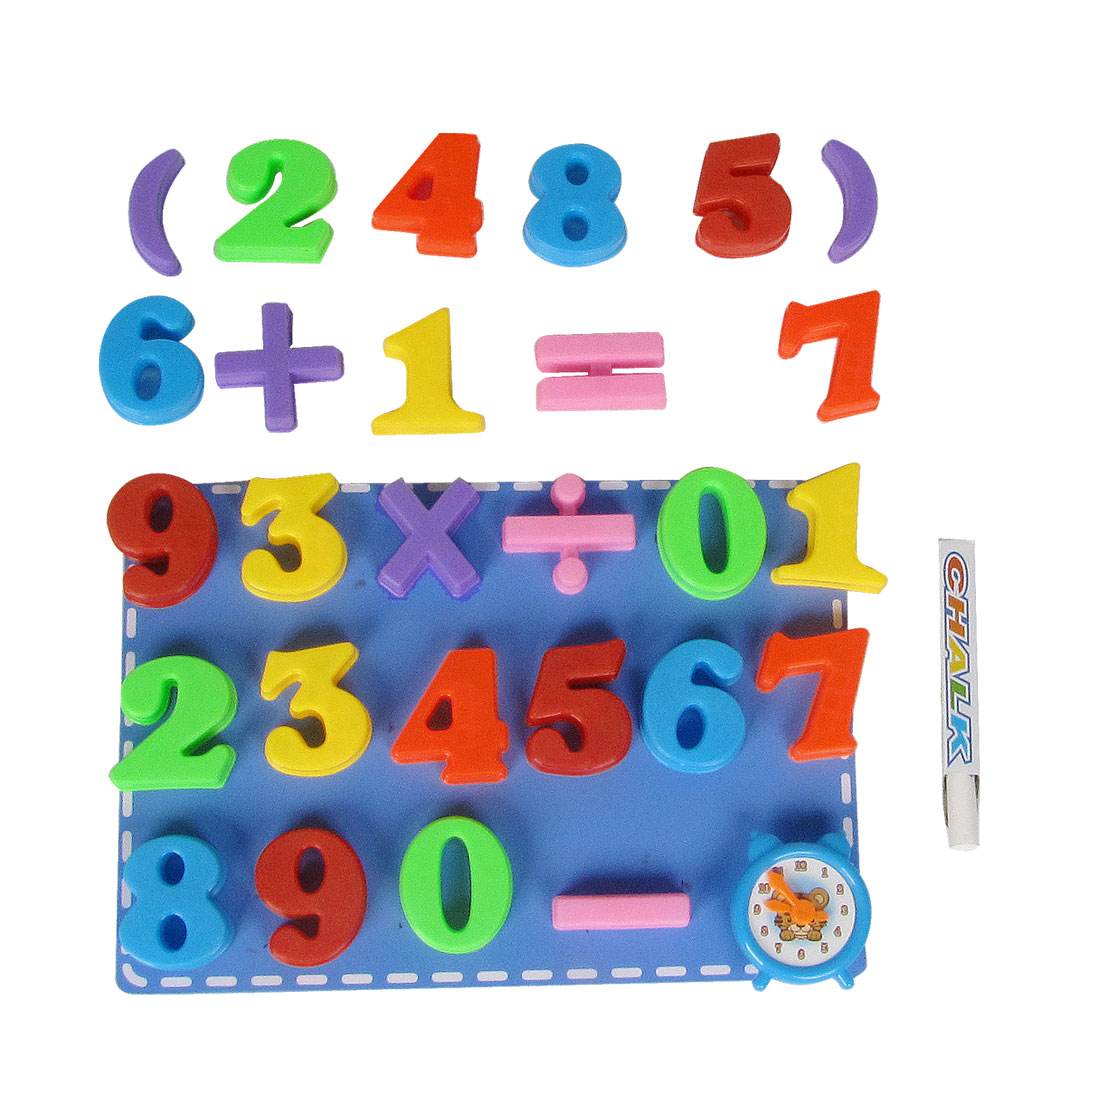 Numbers clipart 1 20 jpg free library Clip Art Numbers 1-20 Clipart - Clipart Kid jpg free library